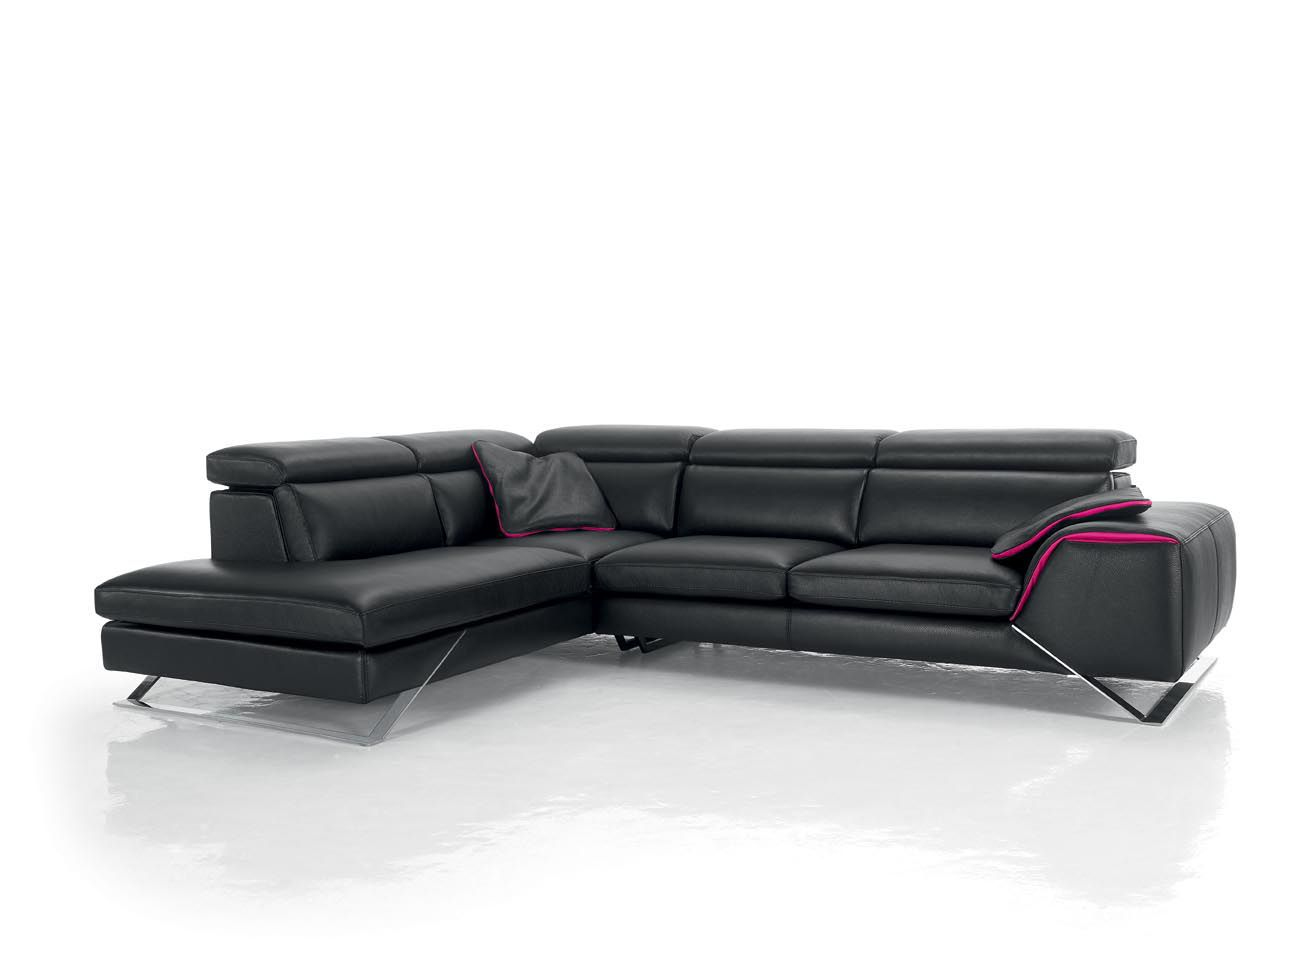 Canapé Italien Direct Usine Nouveau Photos Canap Italien sofa Stunning Canap Design Italien with Canap Italien